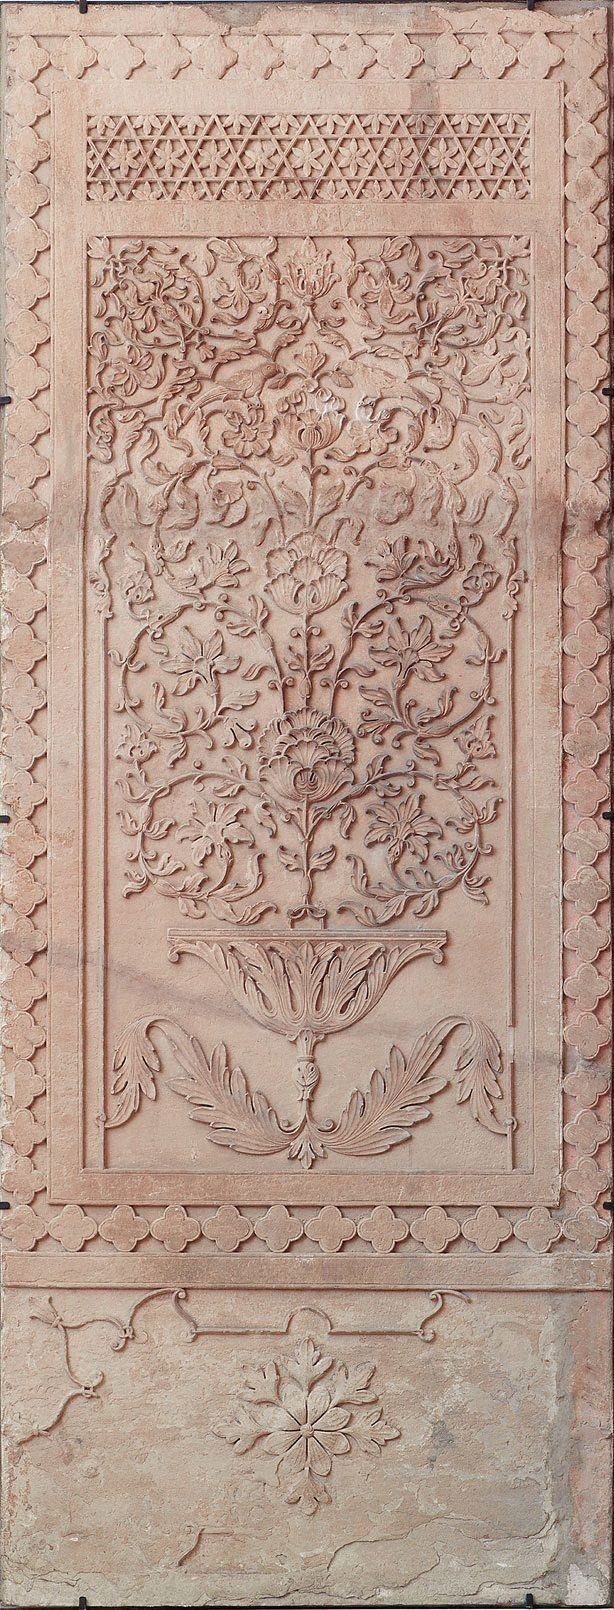 Panel with tree of life - North India